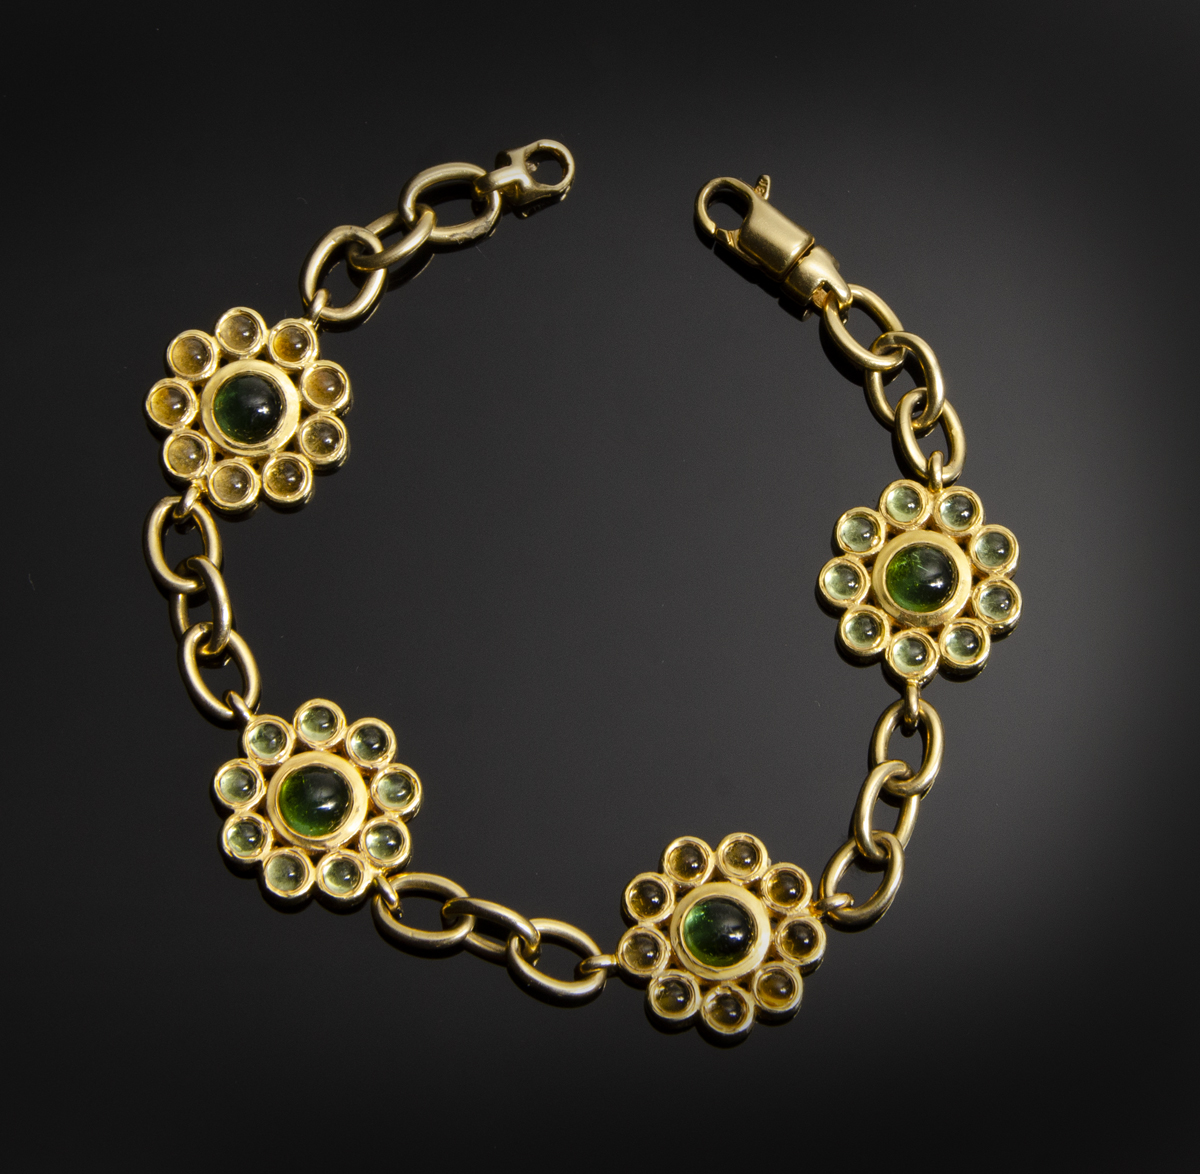 18K yellow gold flower bracelet with bezel set Tourmaline, Citrine and Peridot